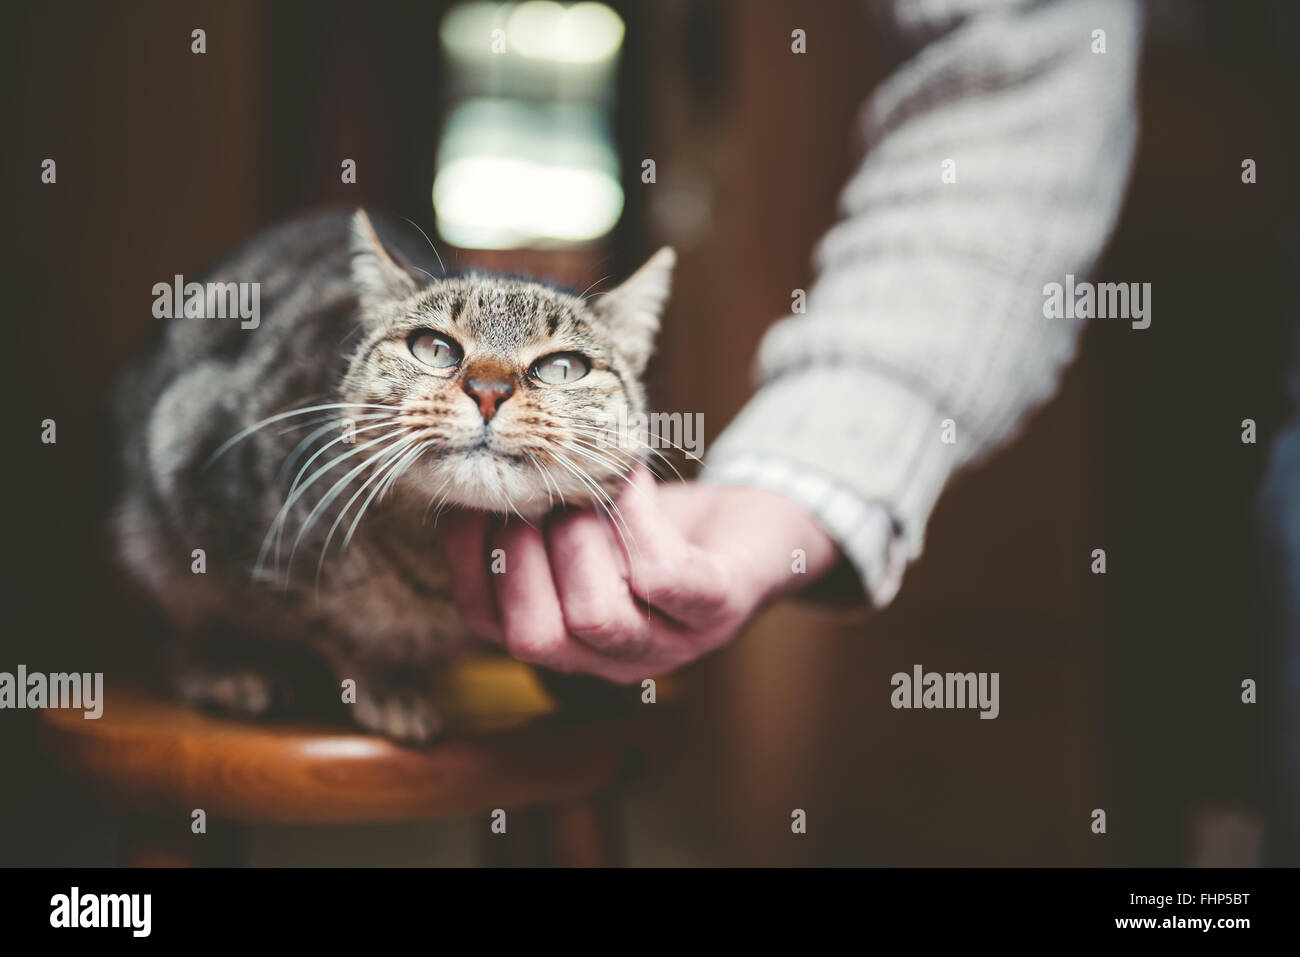 Man's hand stroking tabby cat - Stock Image